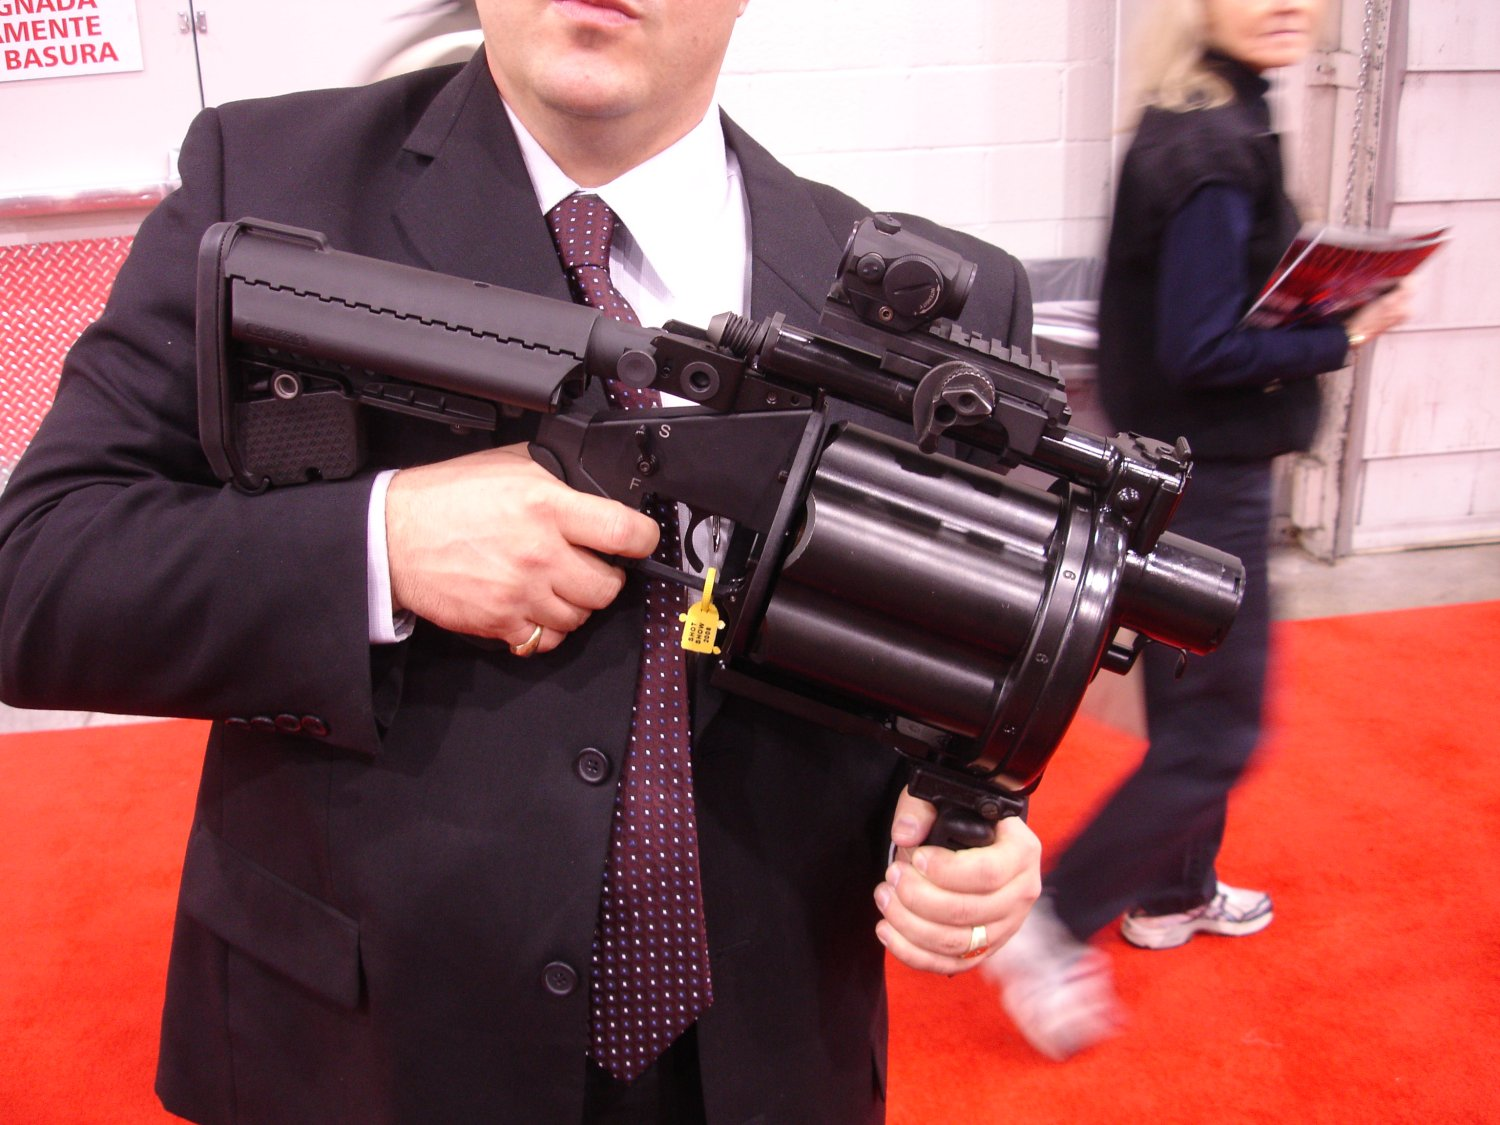 Milkor MGL 5 SHOTShow2008 2 02 08 <!  :en  >Milkor USA Shorty 40mm Multi Grenade Launchers at SHOT Show 2008: Milkor USA Mk14 Mod0 MSGL Prototype Weapon<!  :  >